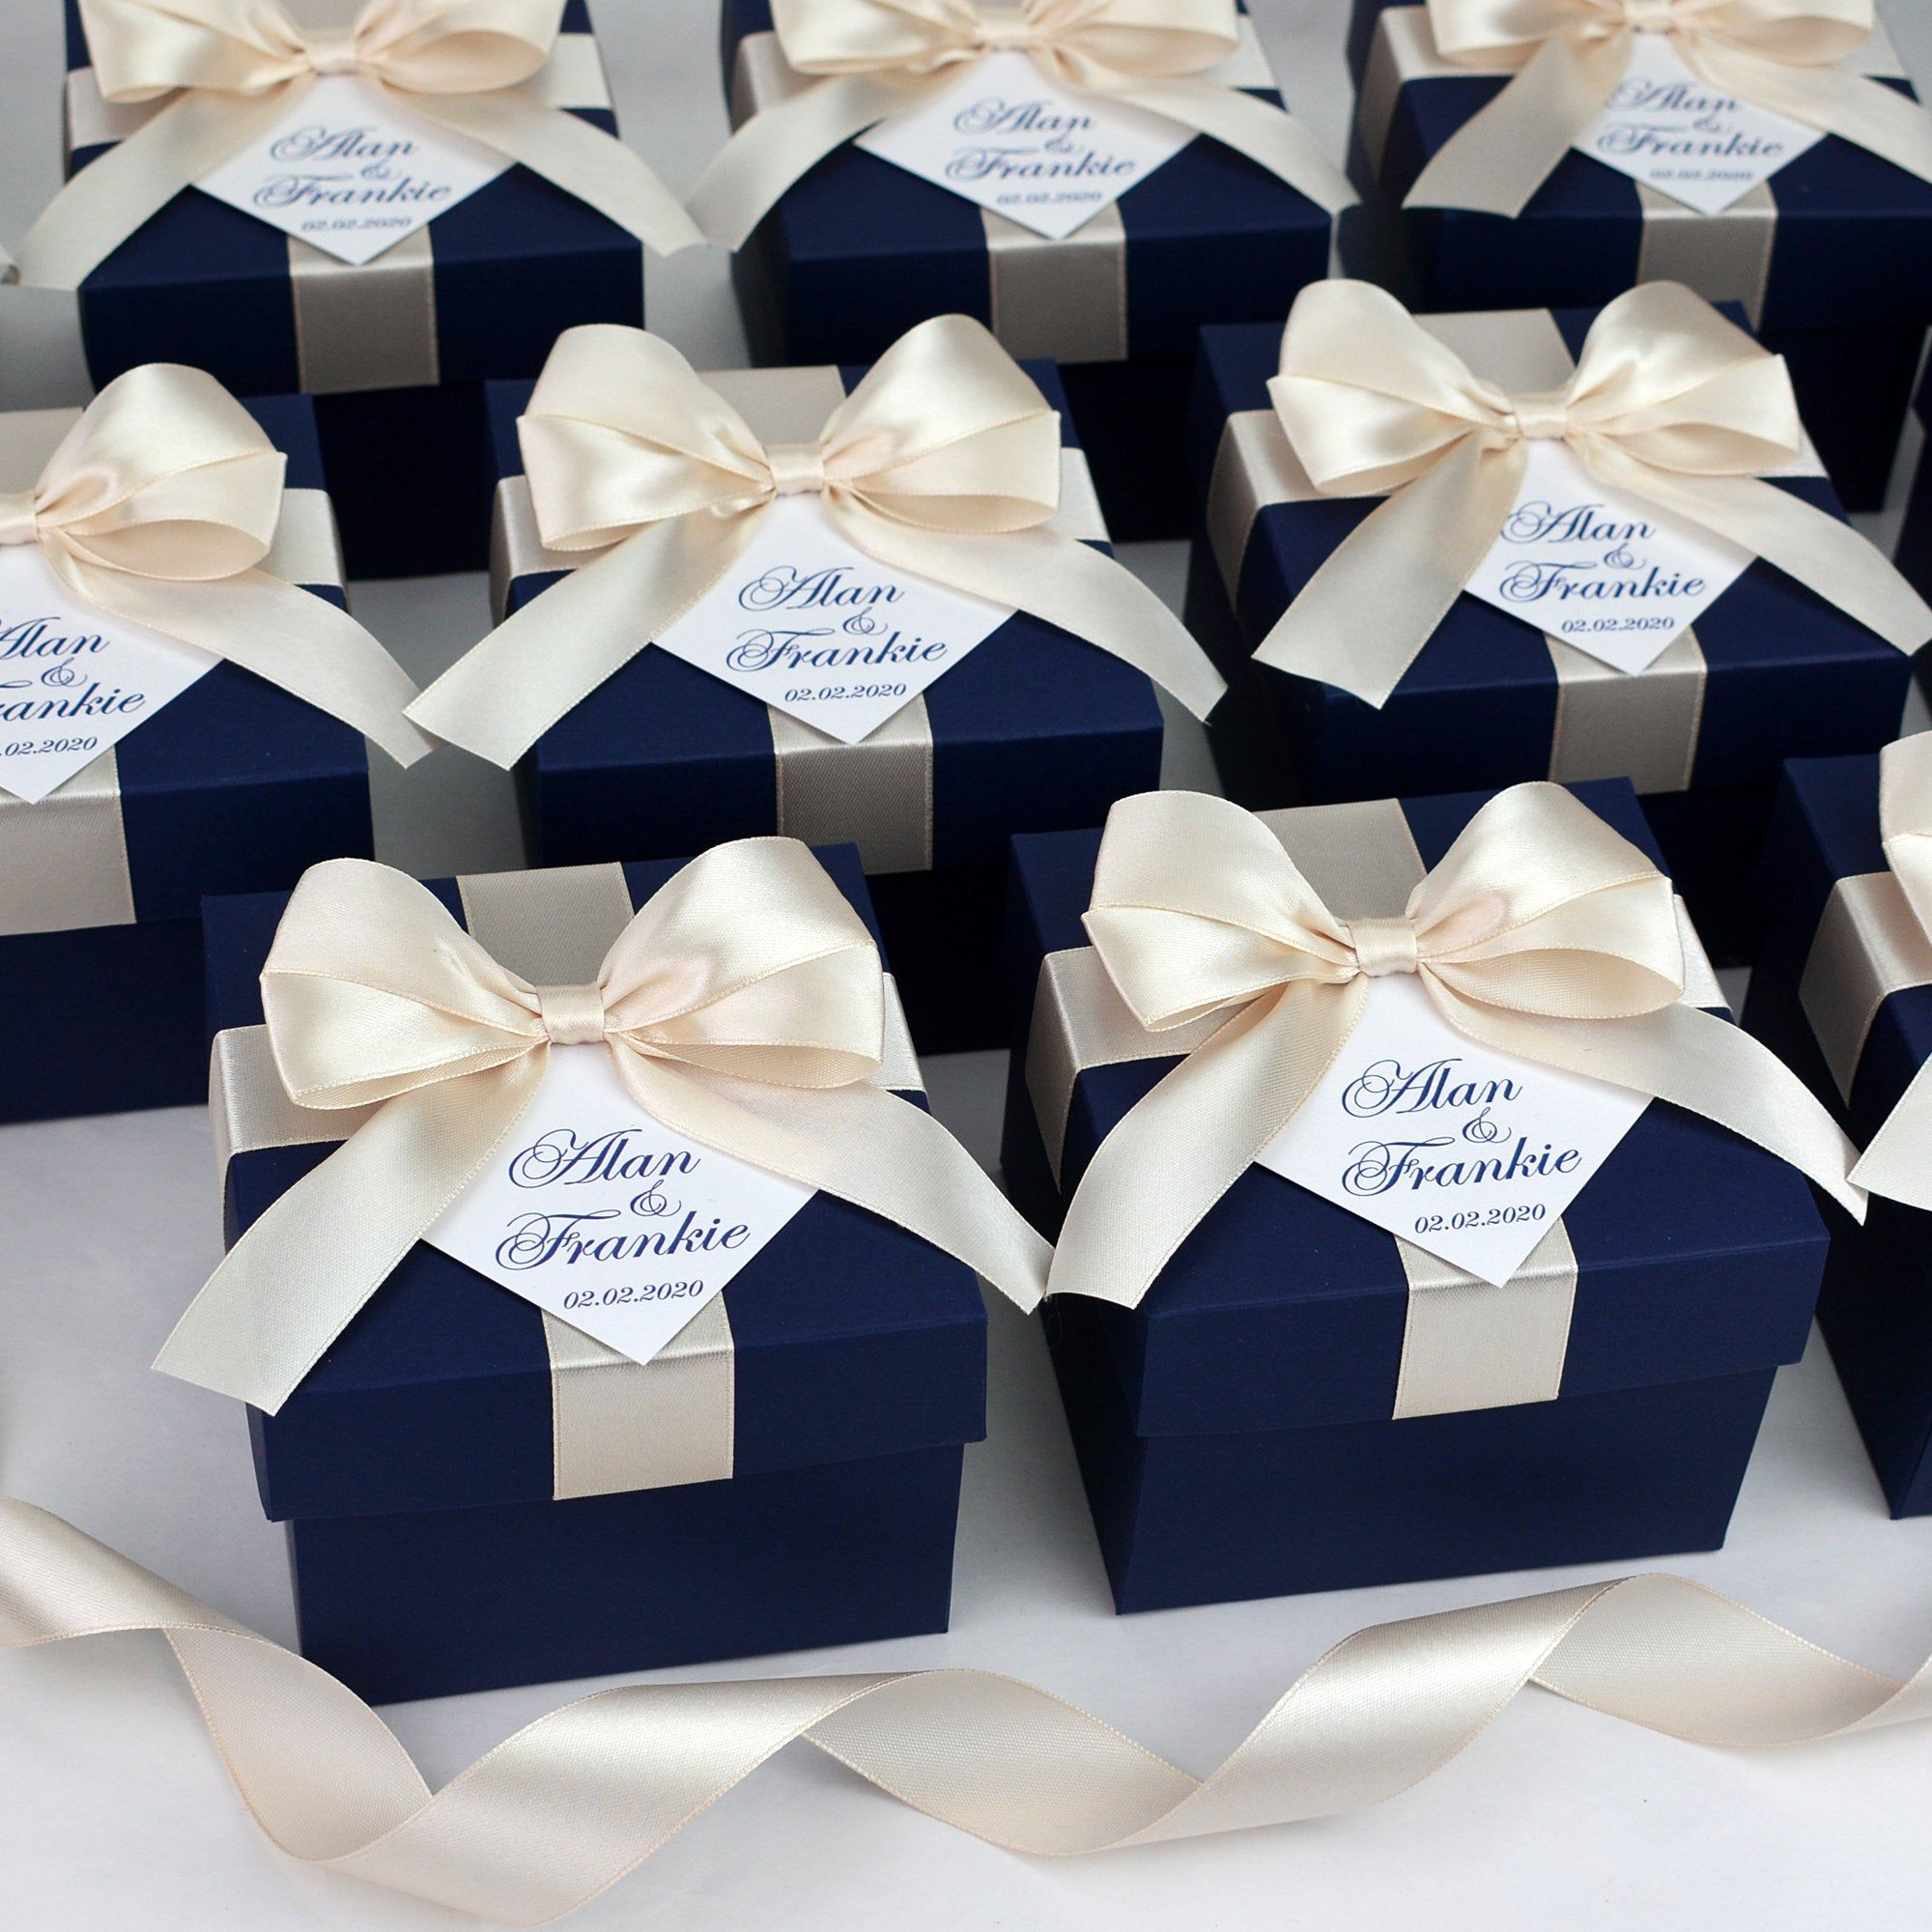 60 Navy Blue & Champagne Wedding favor boxes with satin | Etsy